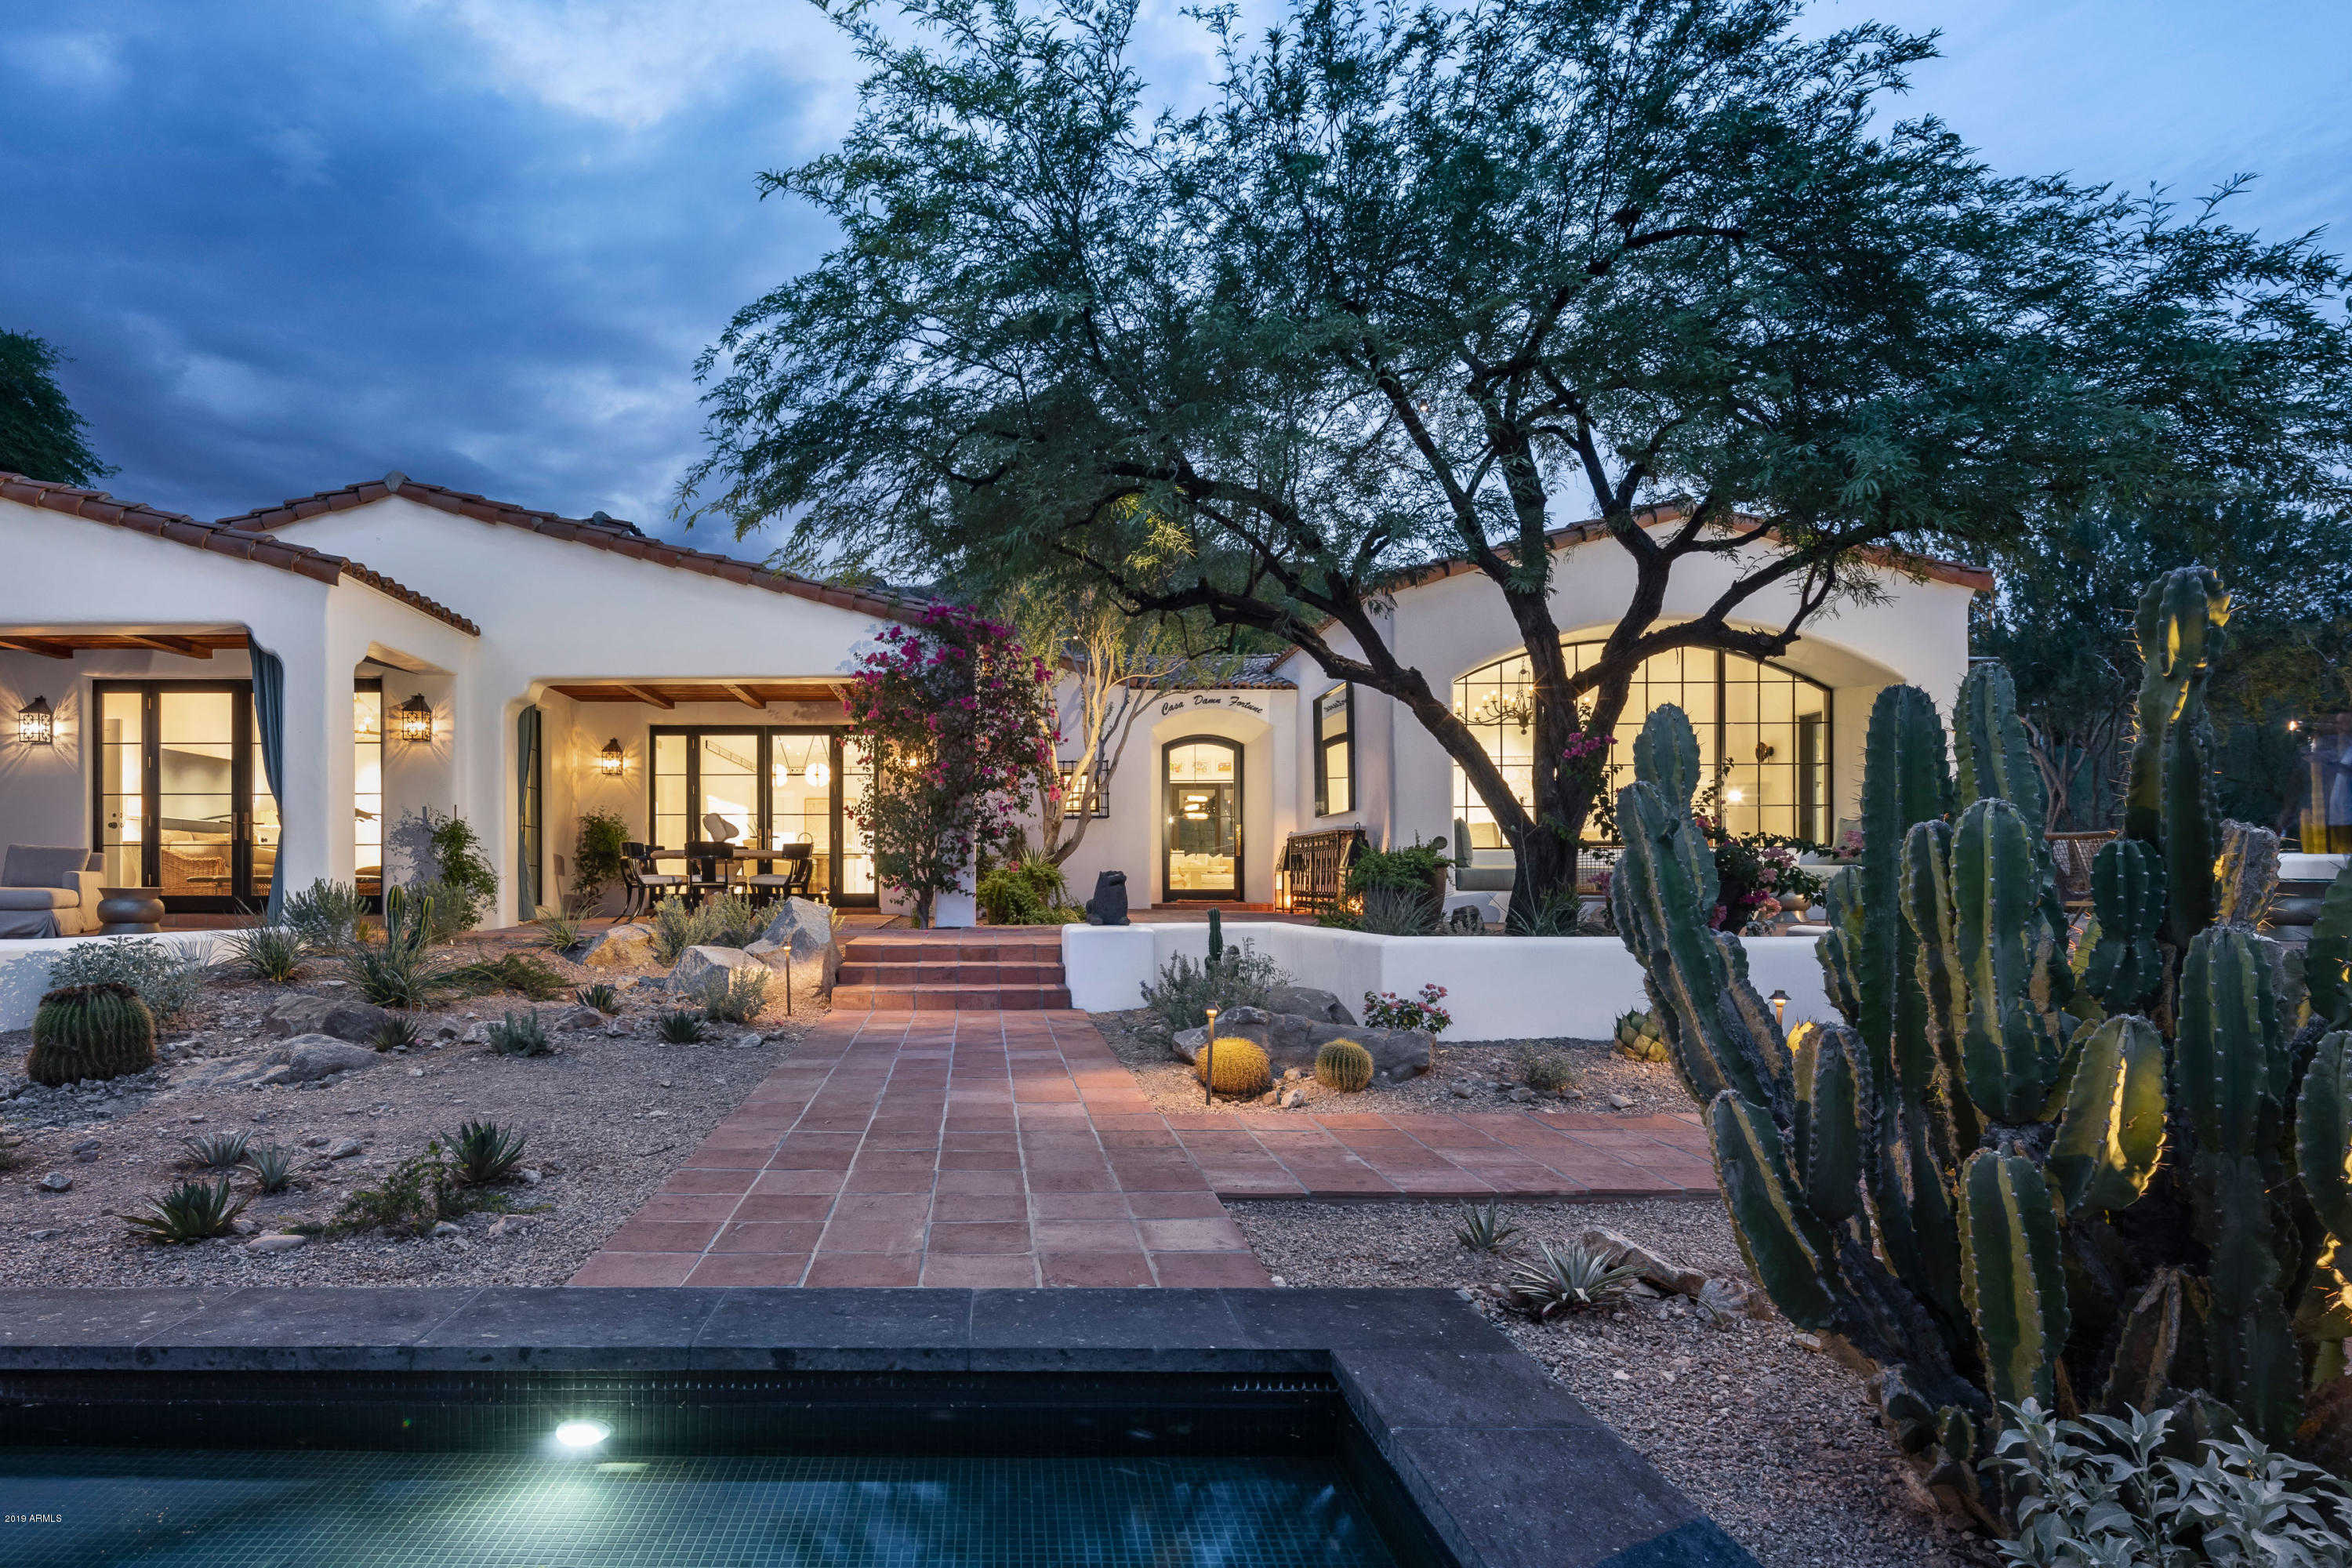 $3,700,000 - 3Br/4Ba - Home for Sale in Paradise Valley Estates, Paradise Valley